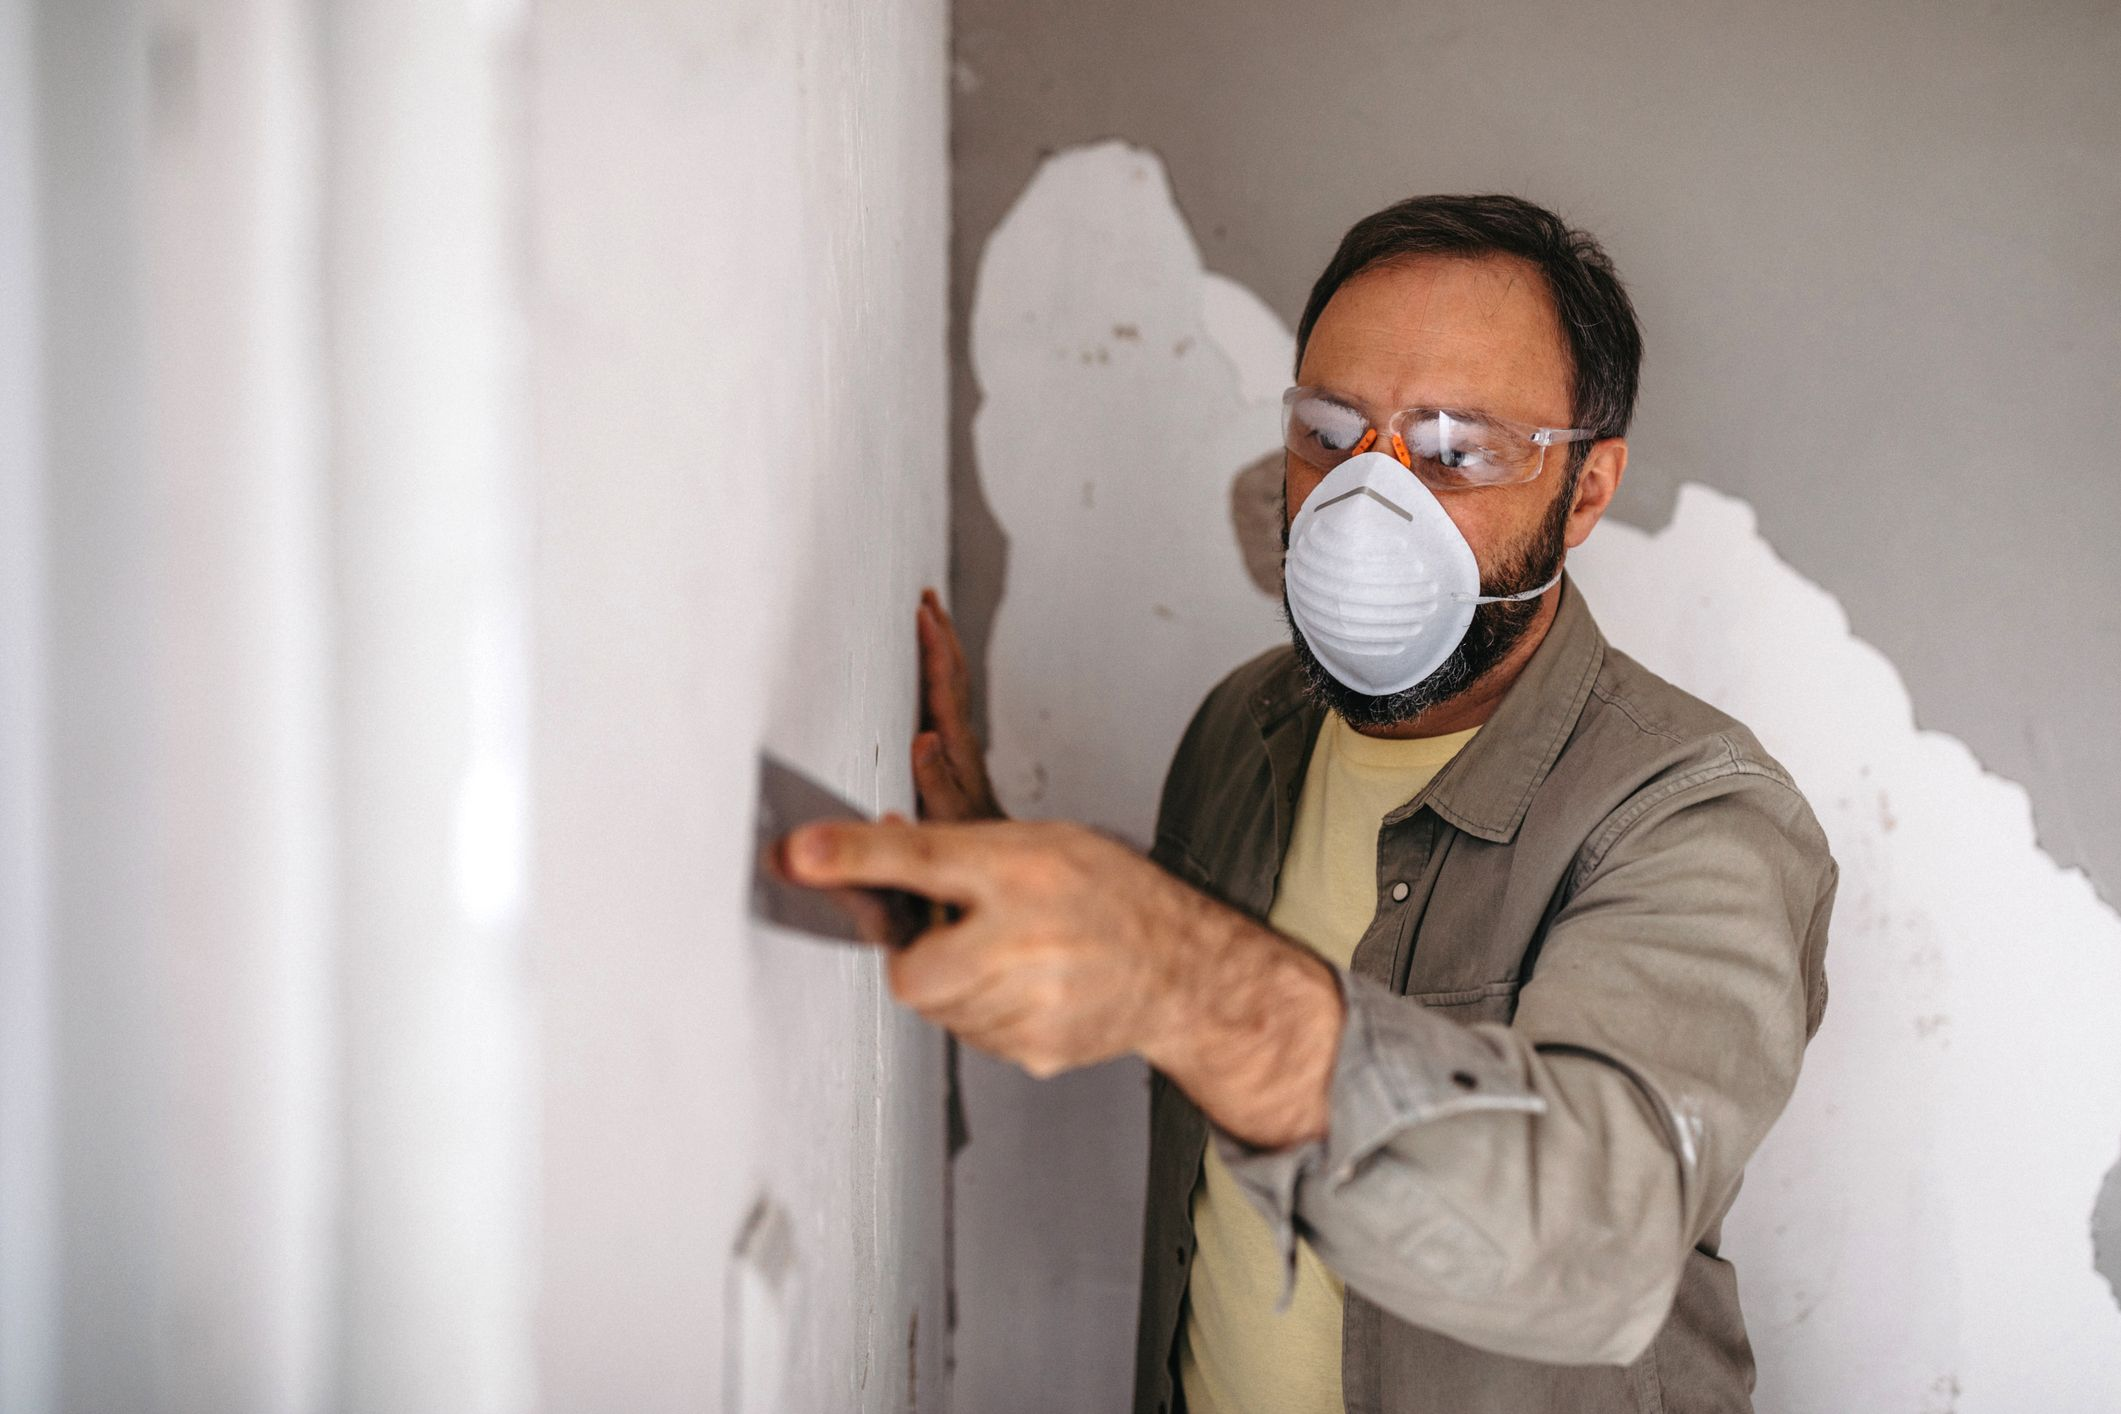 Drywall Repair - All the Ways to Fix Holes and Cracks in Drywall